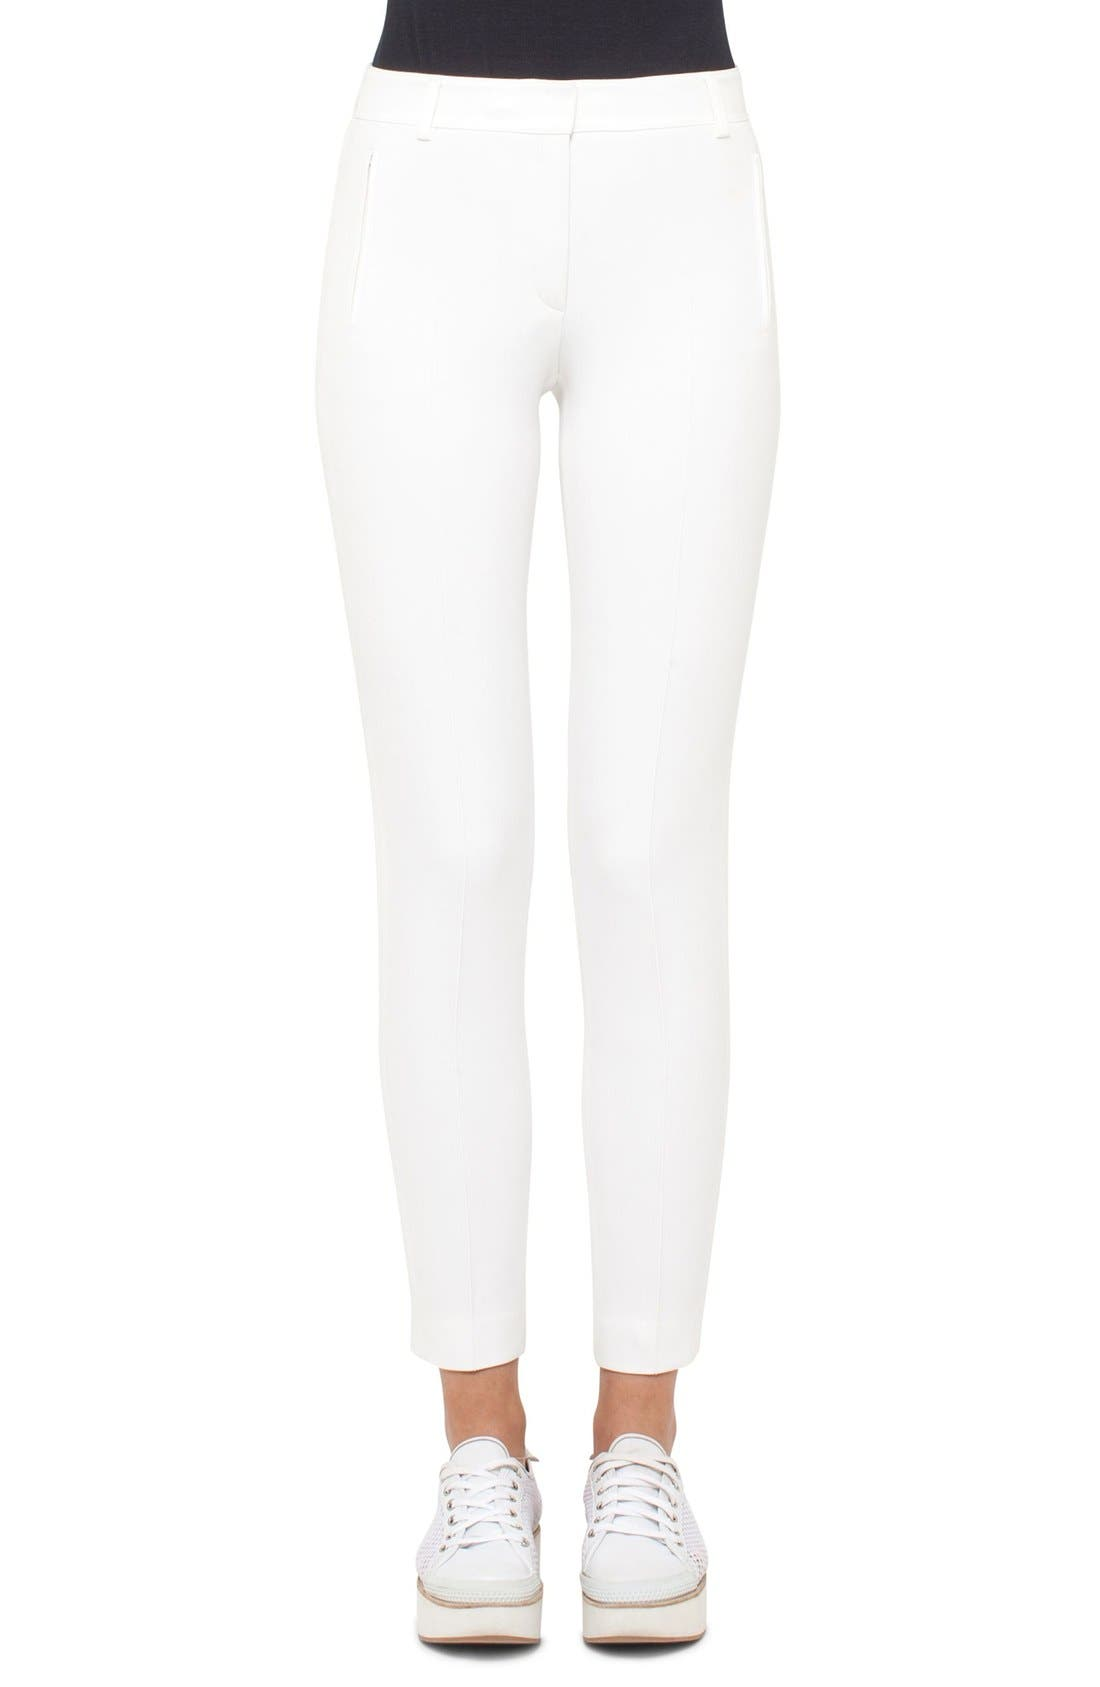 AKRIS PUNTO Crepe Slim Pants